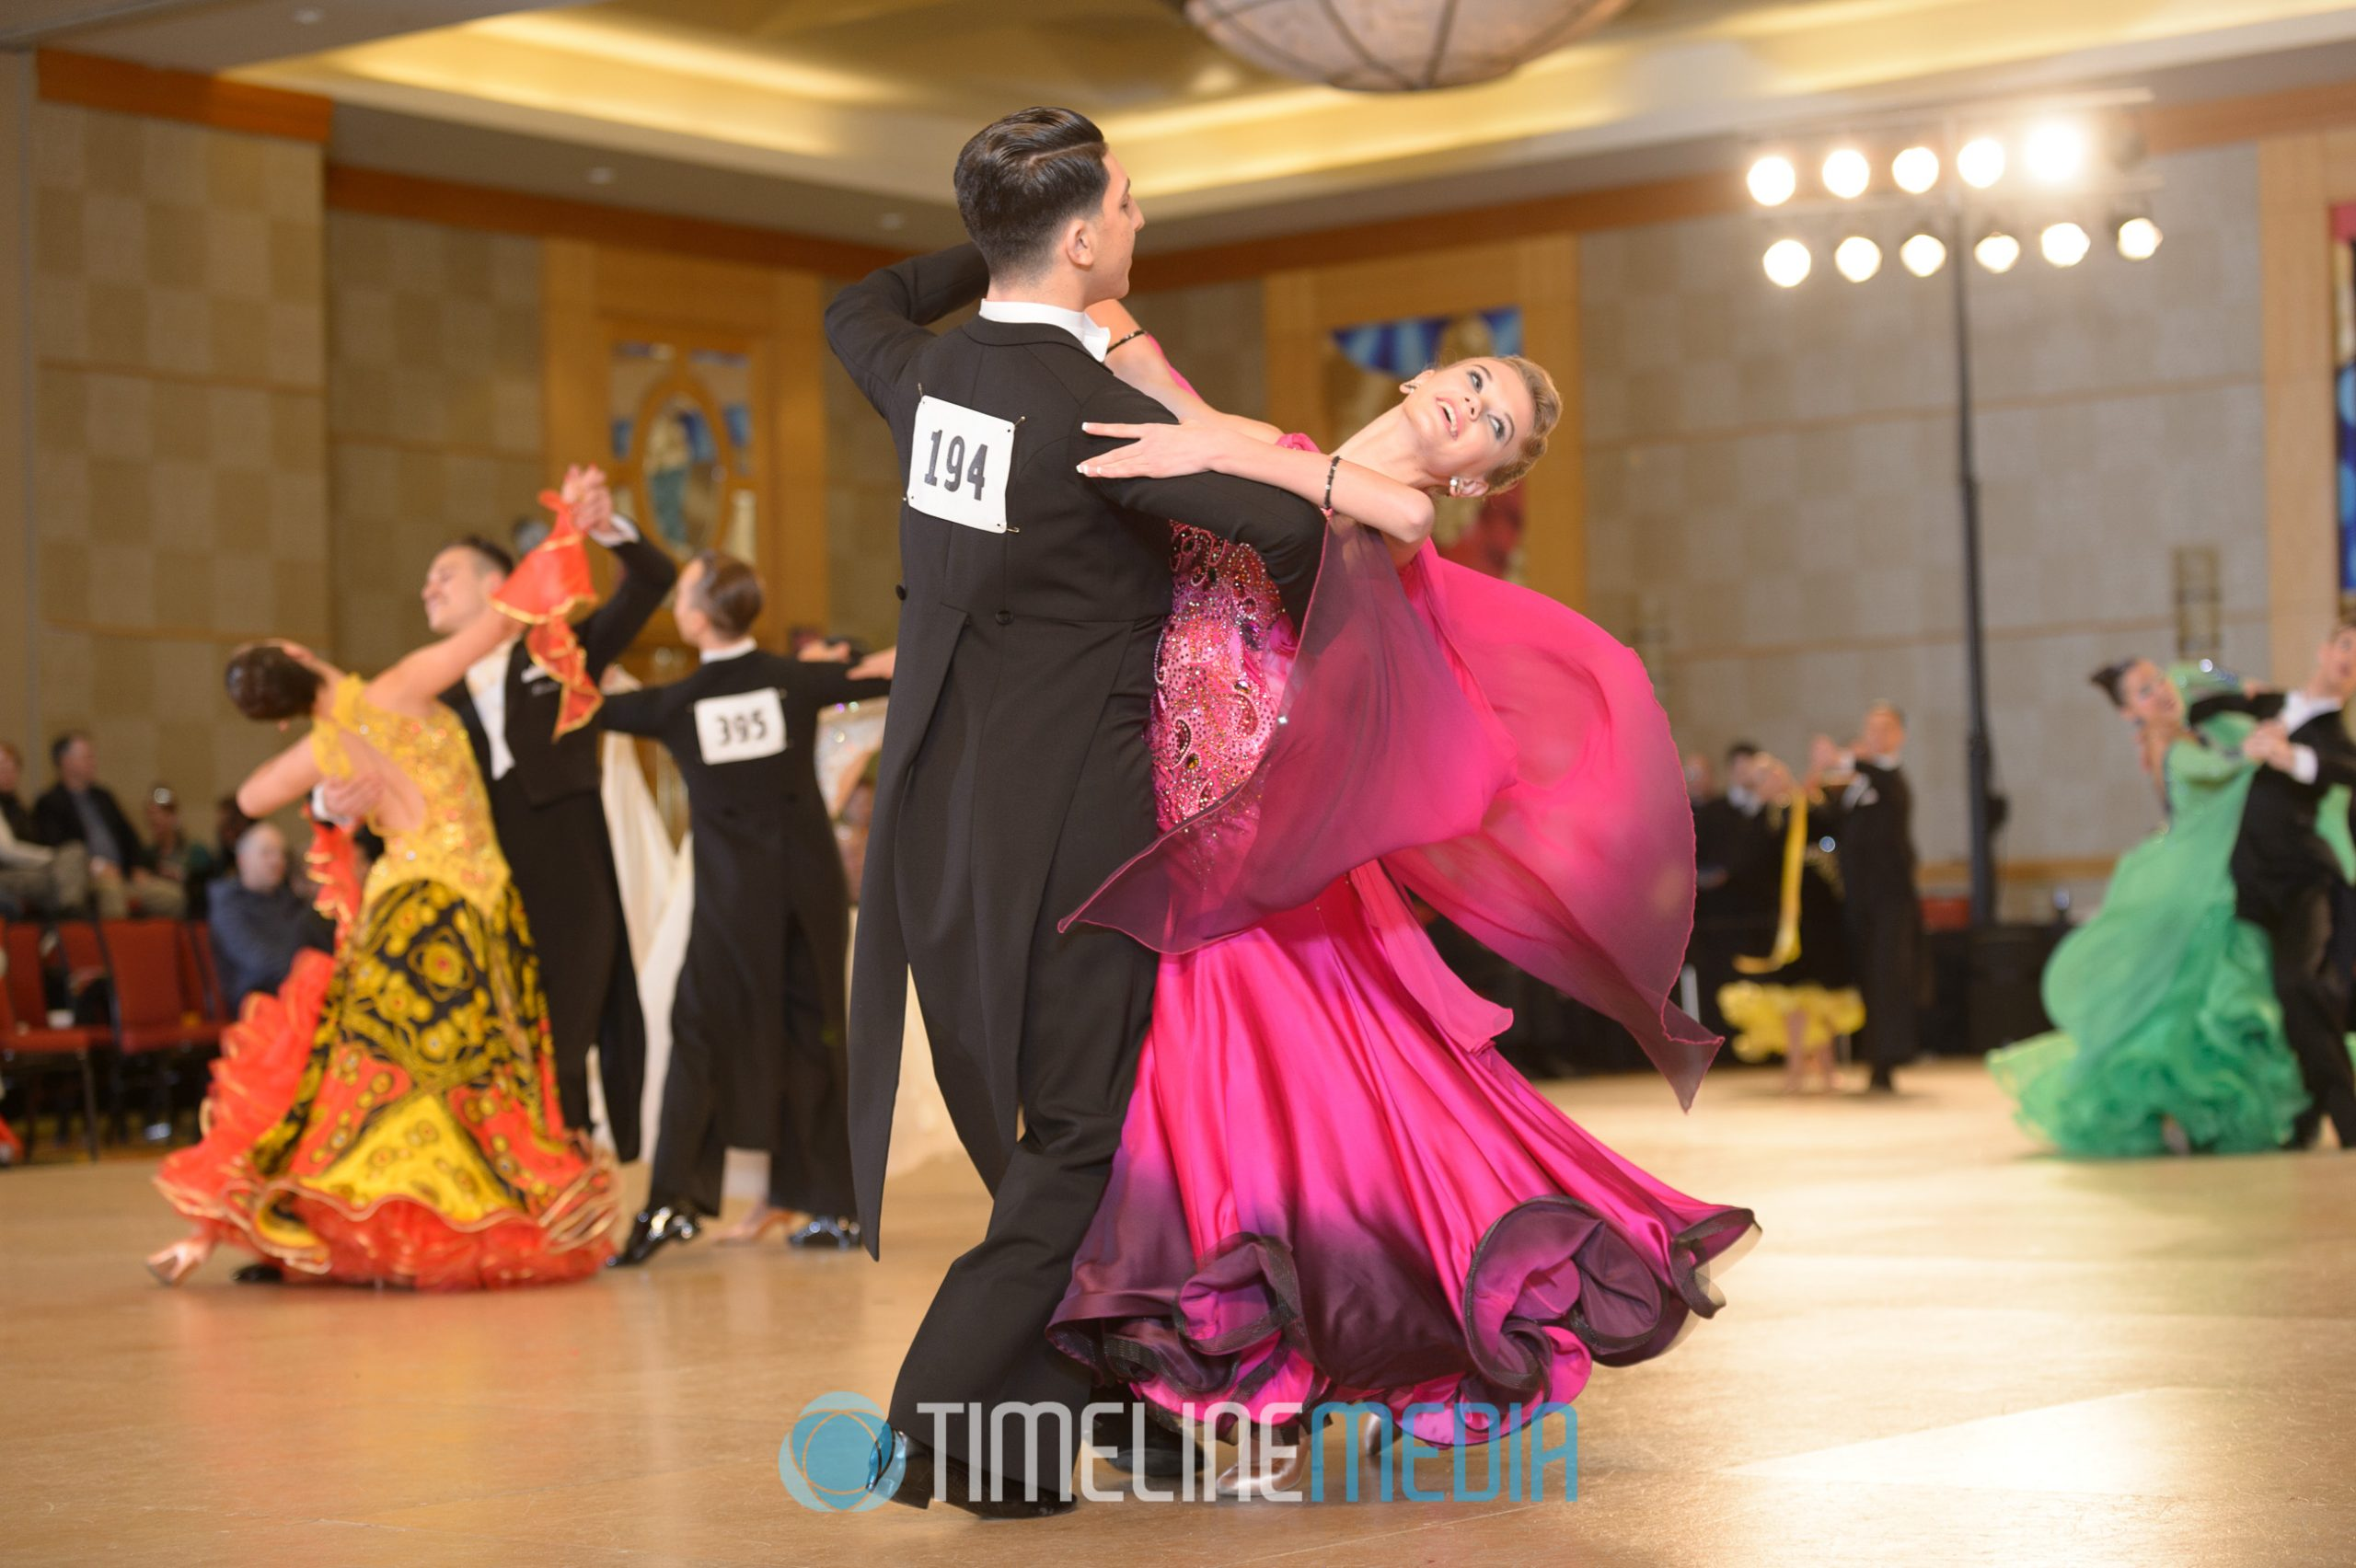 Colorful ballroom dresses - USA Dance competition ©TimeLine Media